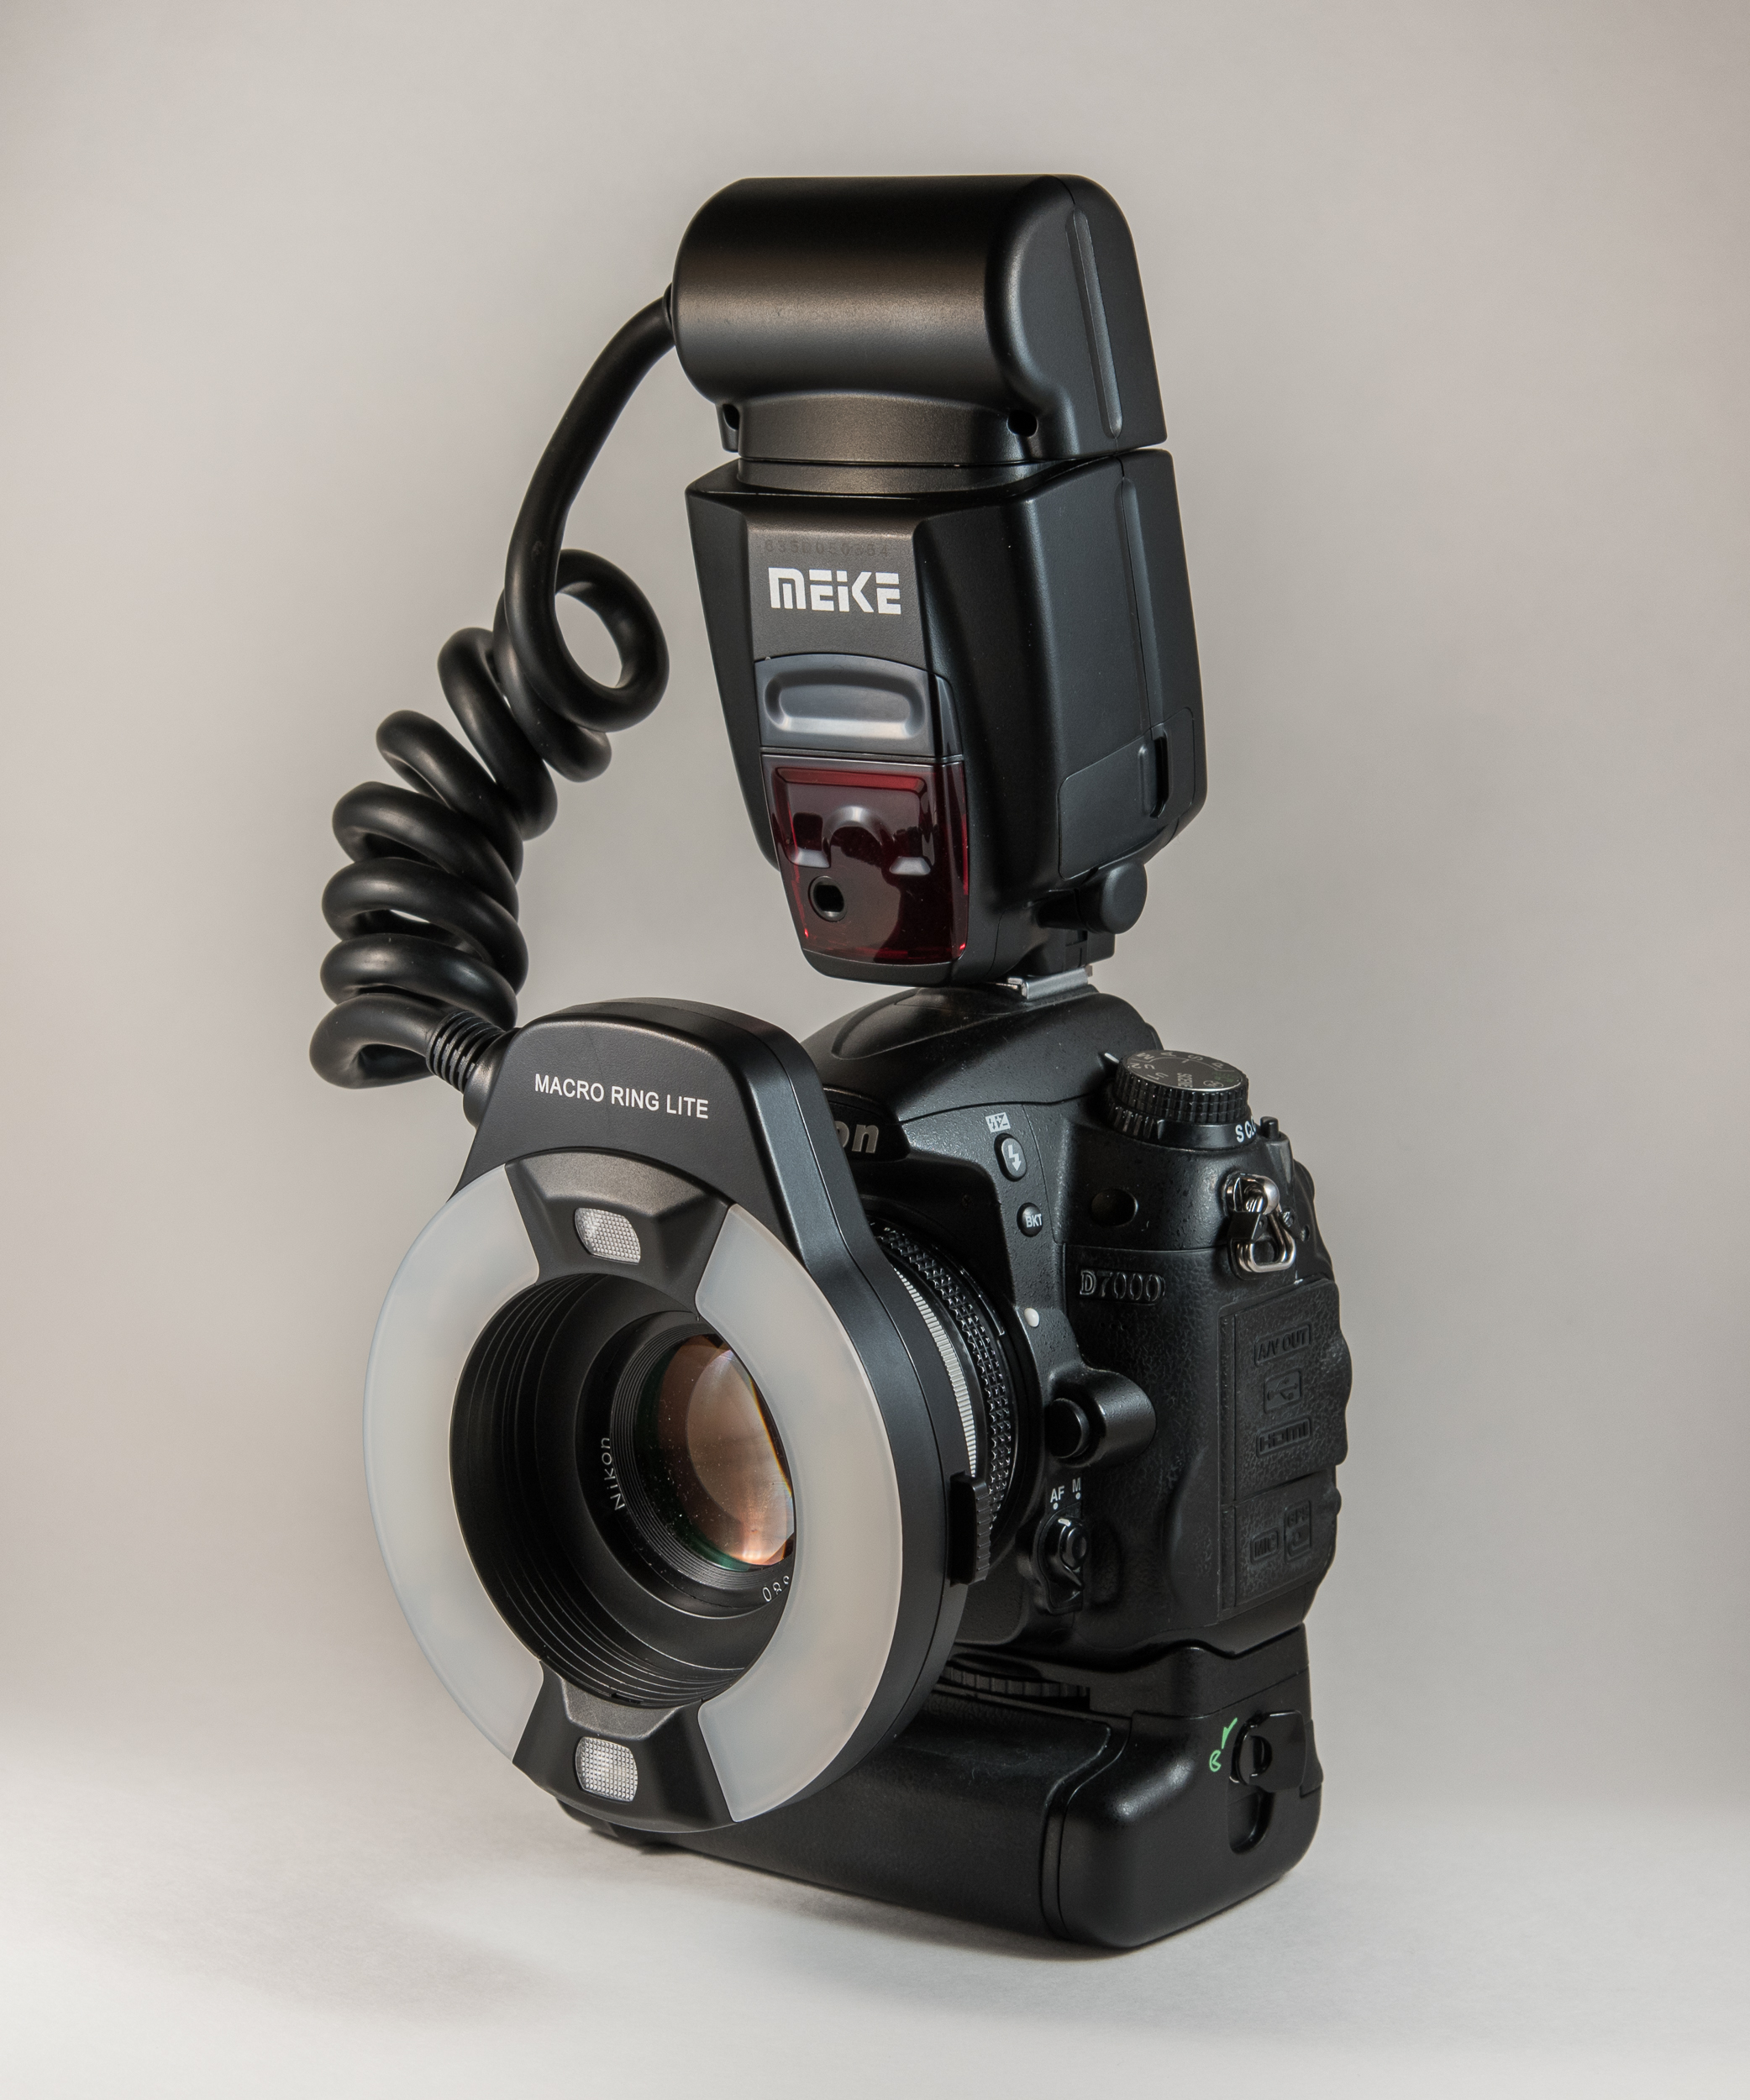 Meike MK-14EXT on a Nikon D7000 - Two modeling LED lights and A and B side flashes